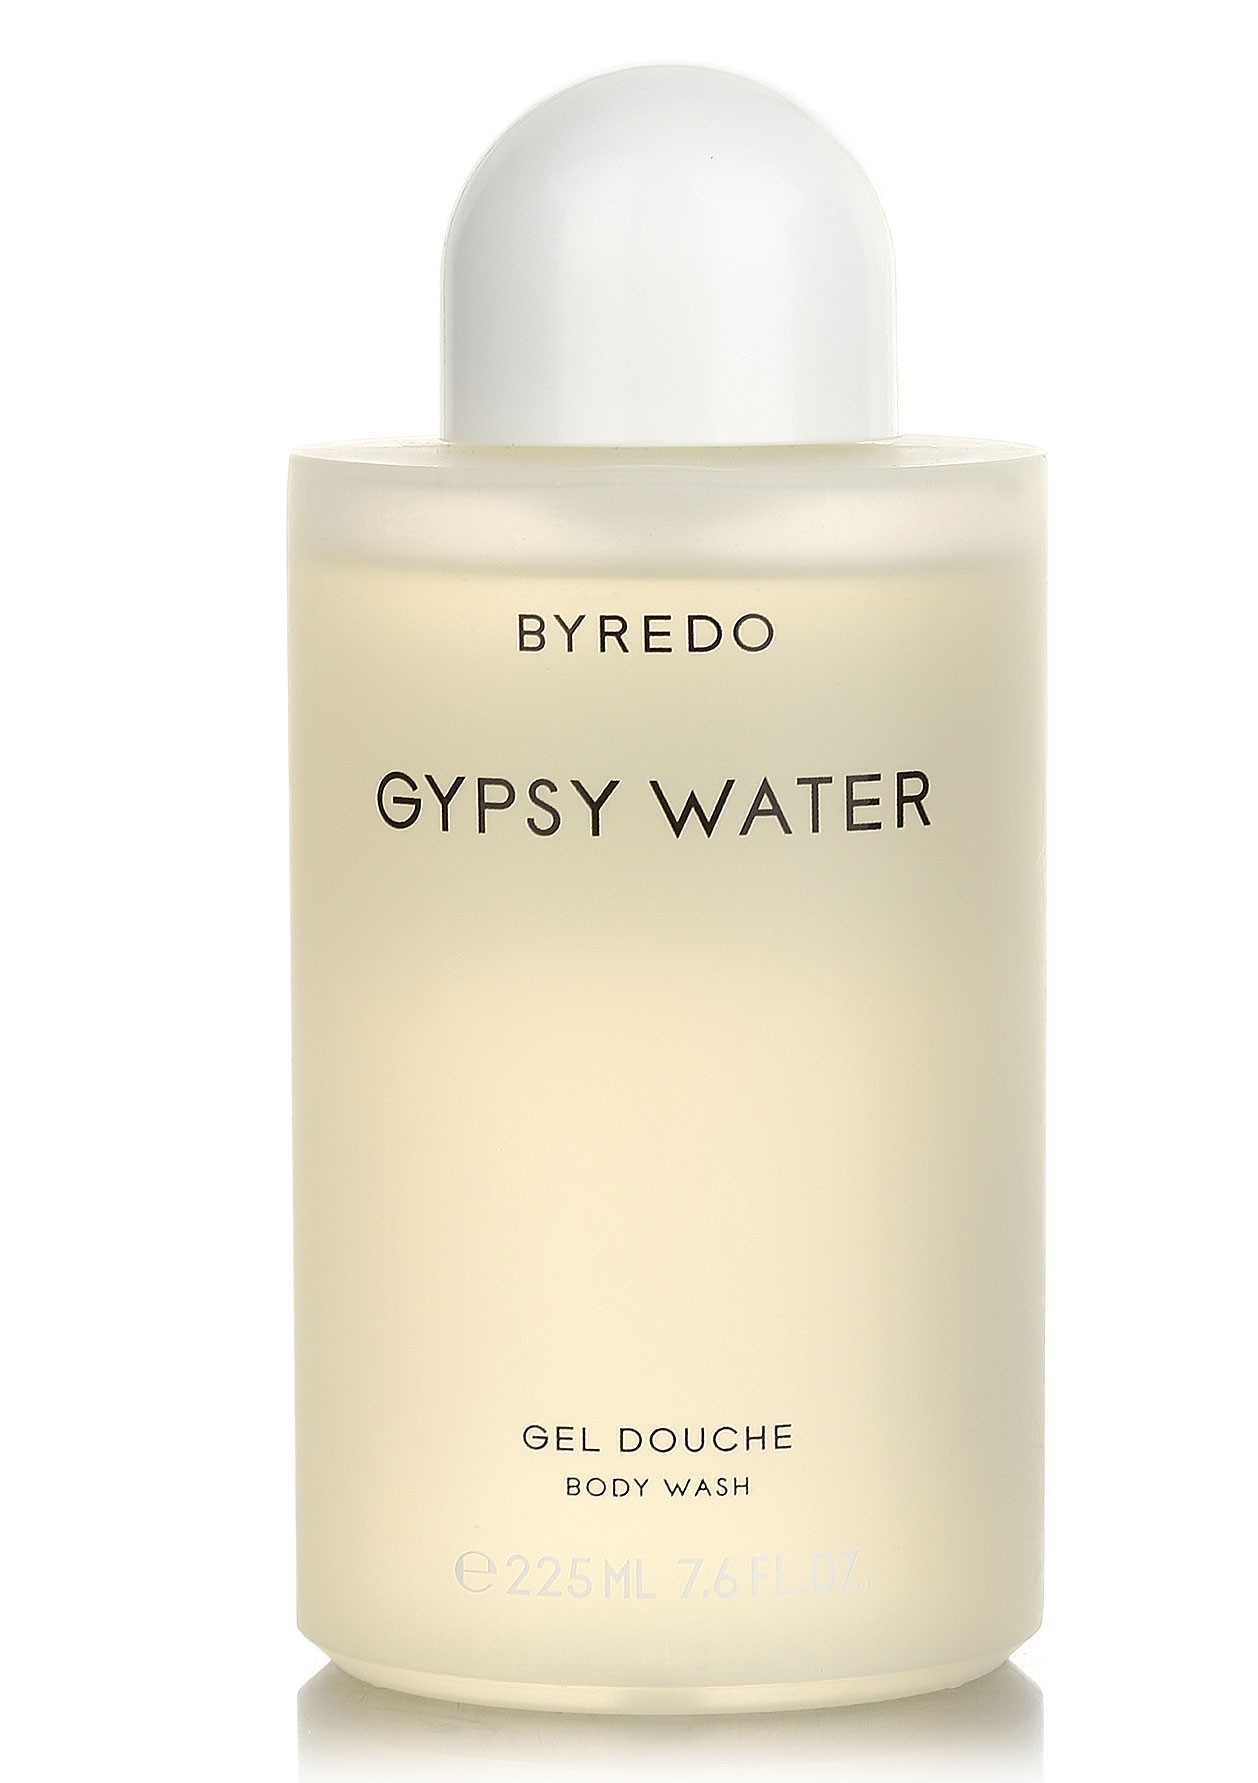 Гель для душа Byredo Gypsy Water 225ml фото